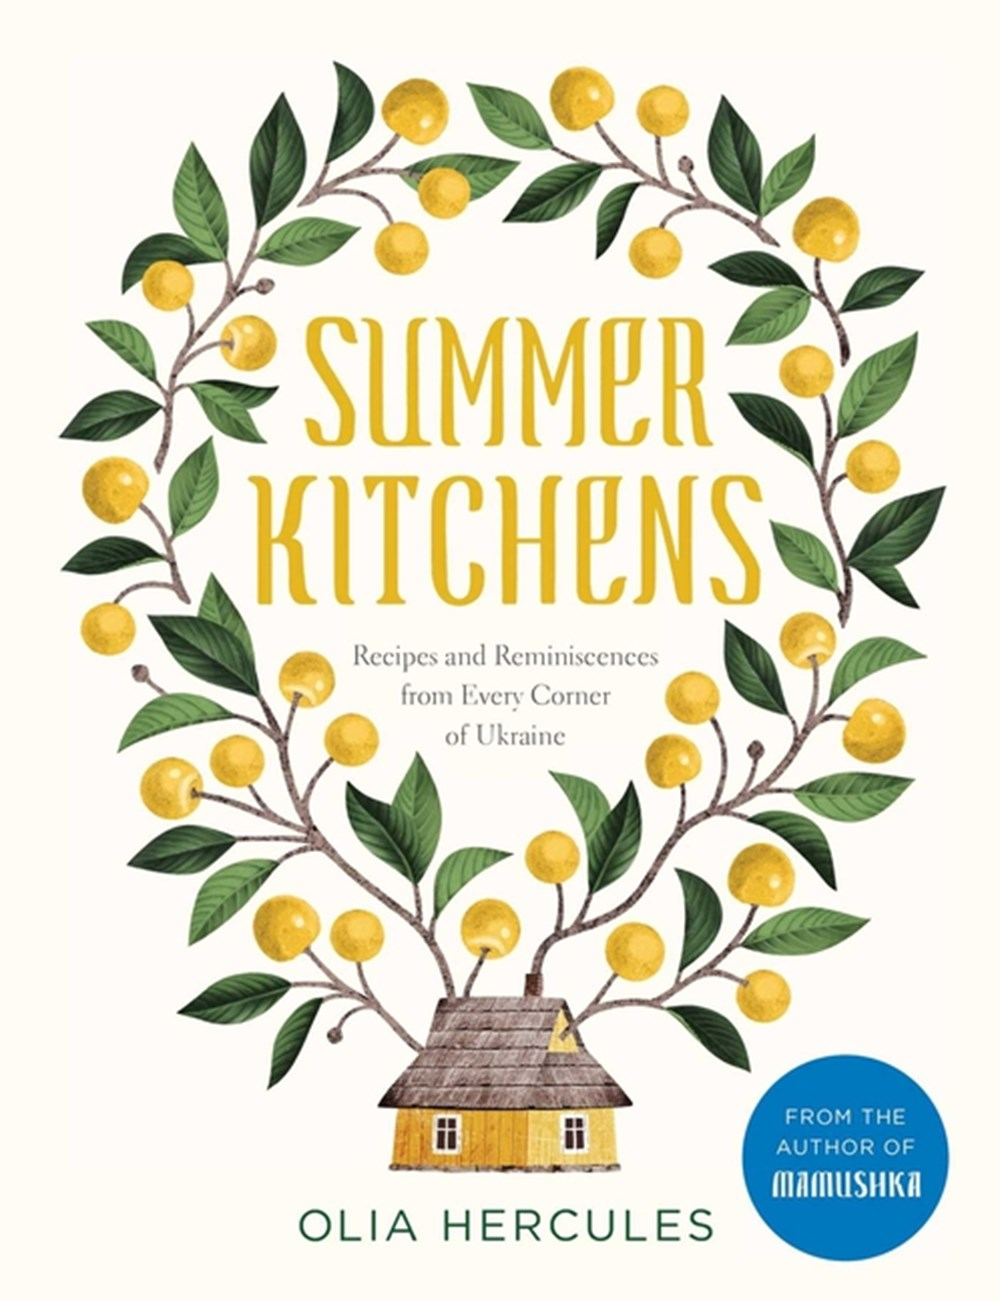 Summer Kitchens Recipes and Reminiscences from Every Corner of Ukraine